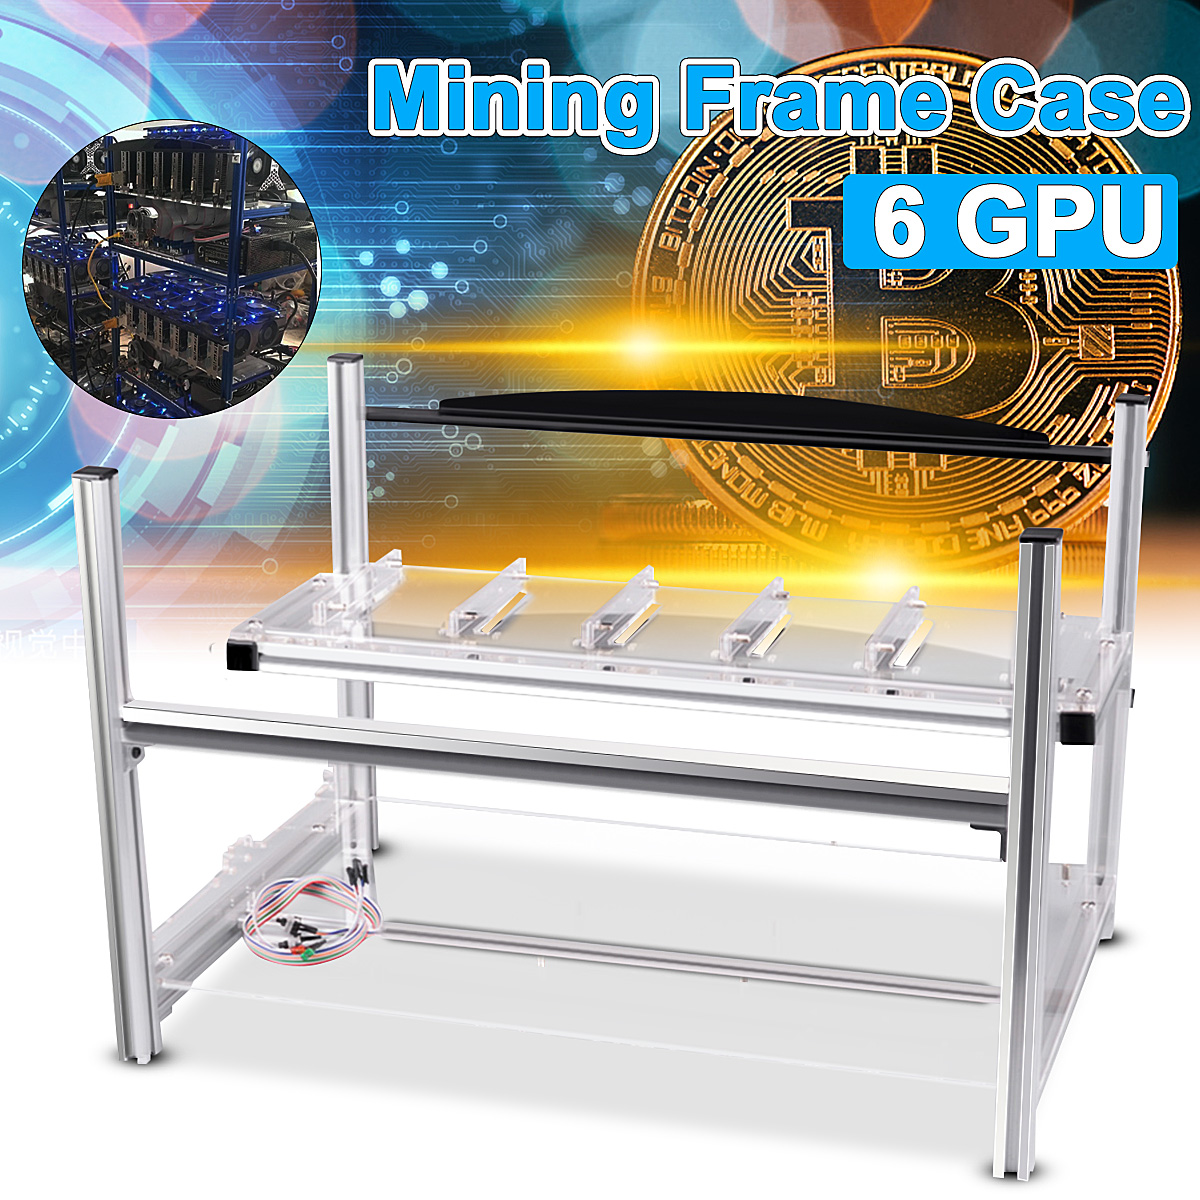 DIY Aluminum Frame Case For 6 GPU Mining Crypto-currency Mining Machine Rigs Miner Frame Case Server Chassis